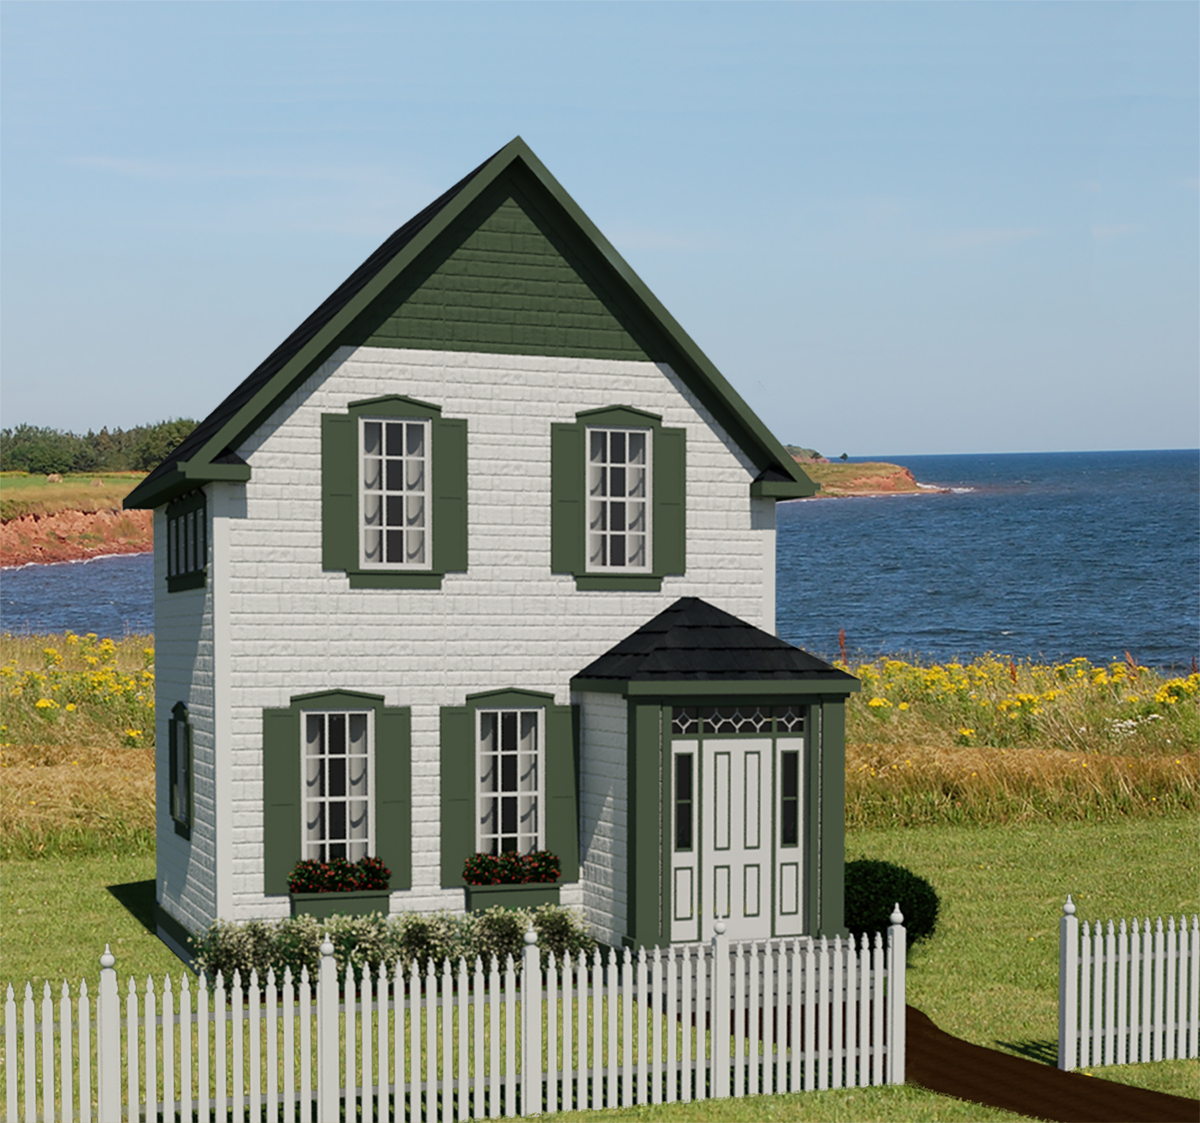 Prince edward island 597 robinson plans for Tiny house designers